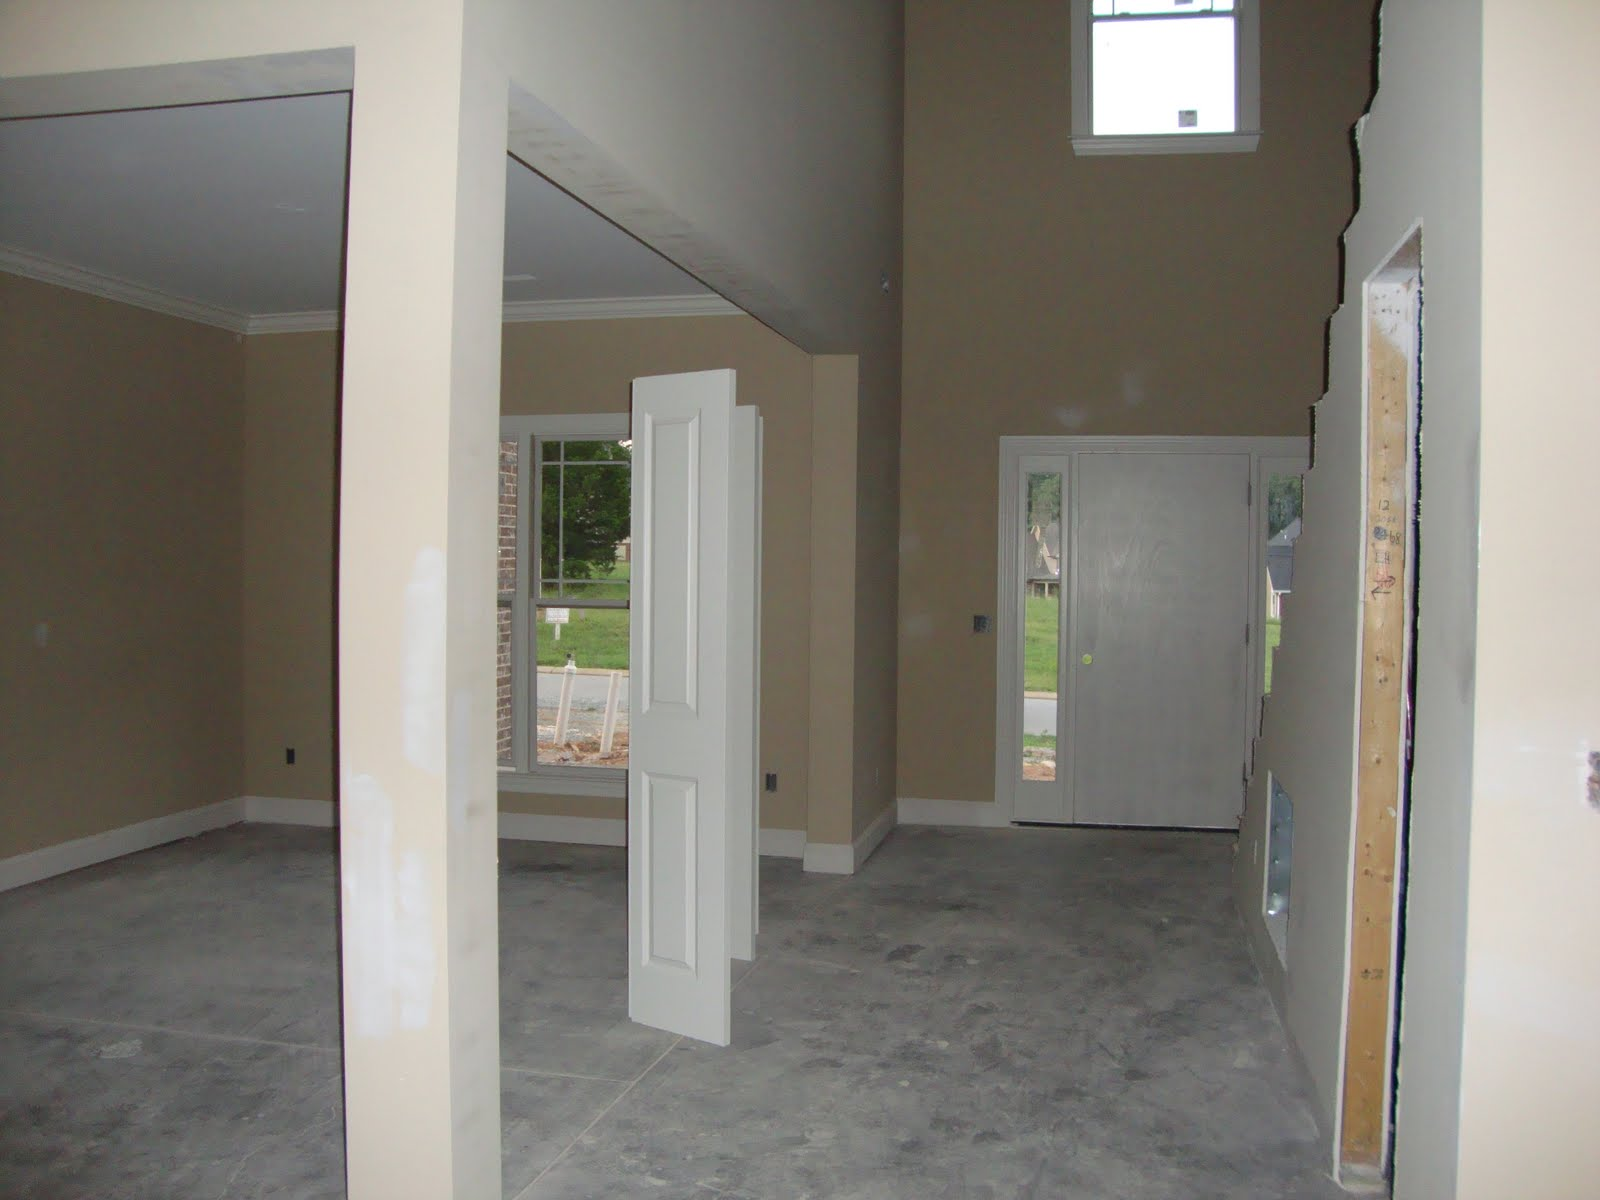 Most Popular Foyer Paint Colors : Sherwin williams neutral paint colors